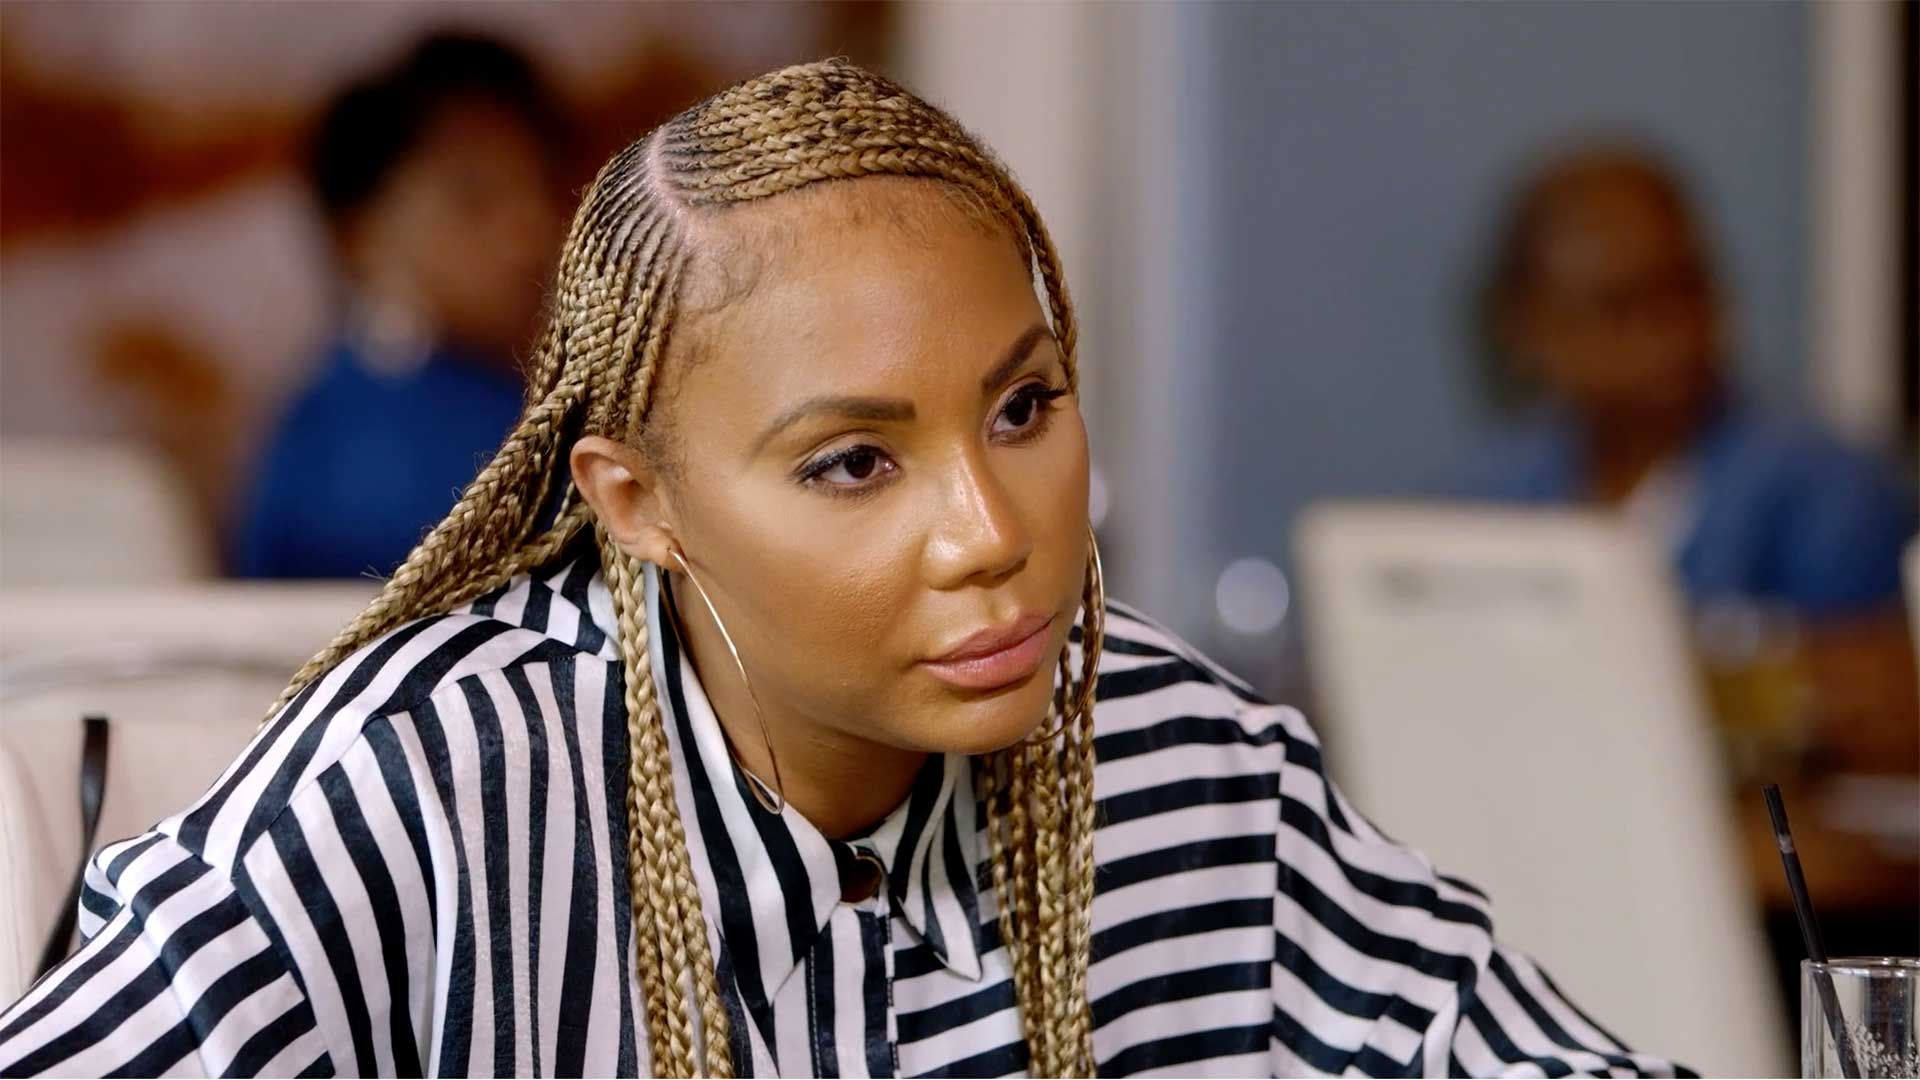 Tamar Braxton With Box Braids Tamar Vince Why The New